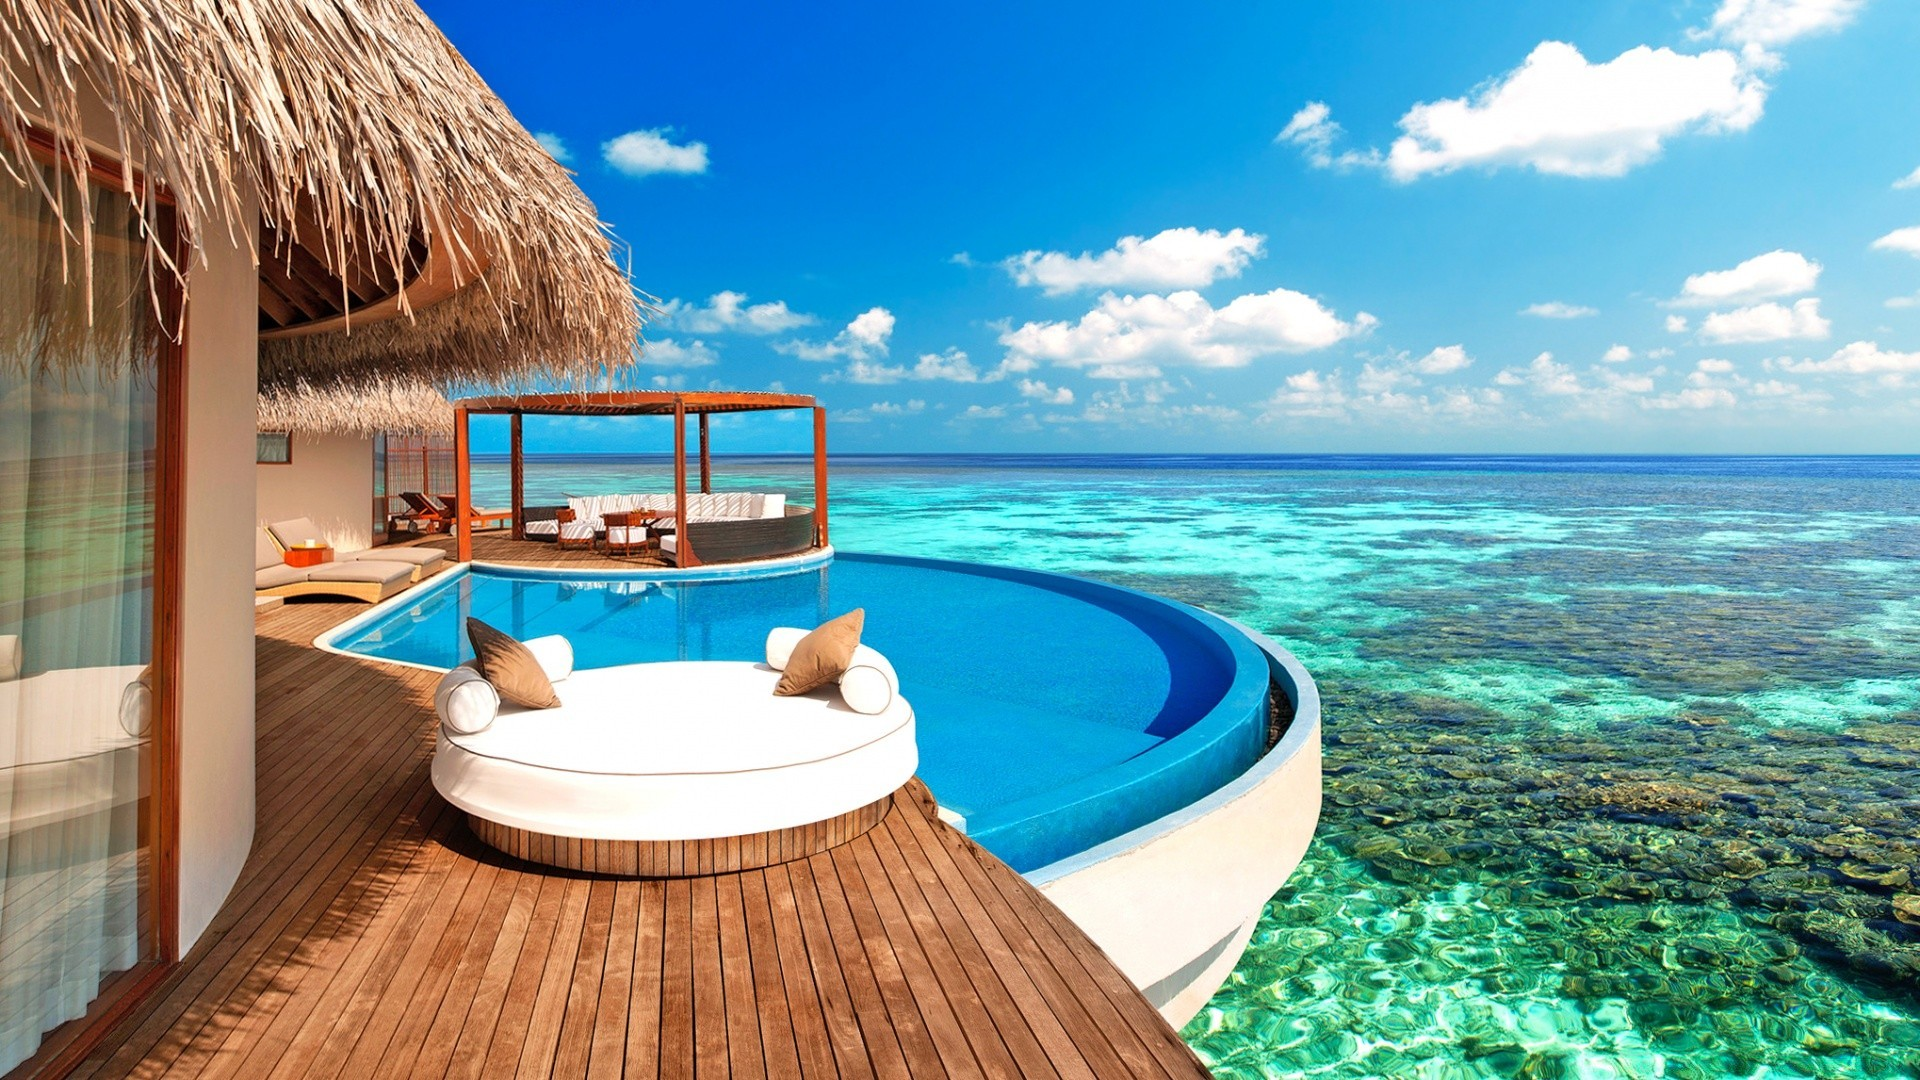 islands tropical water resort relaxation travel beach vacation summer turquoise chair ocean island idyllic sea sand seashore exotic hotel paradise